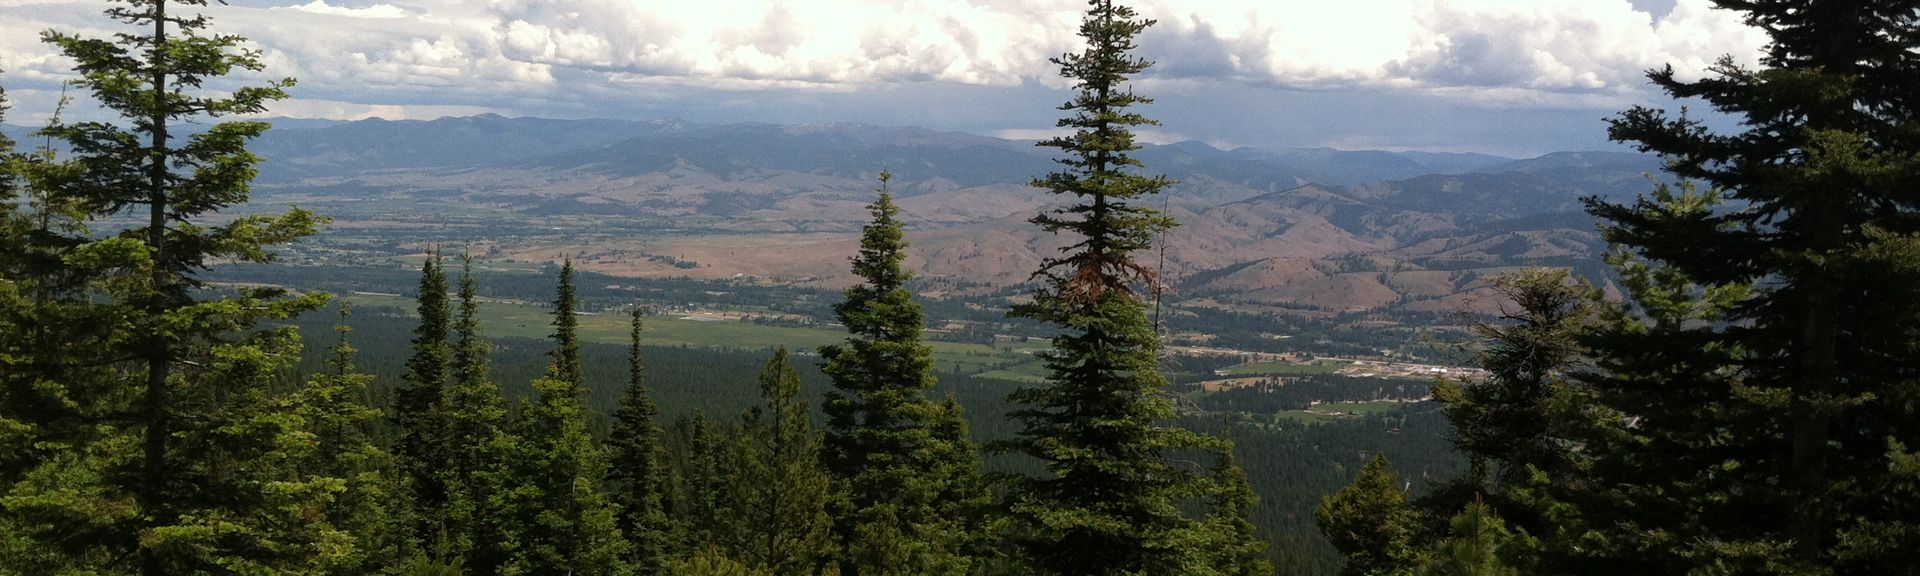 Travelers' Rest State Park, Lolo, MT, USA